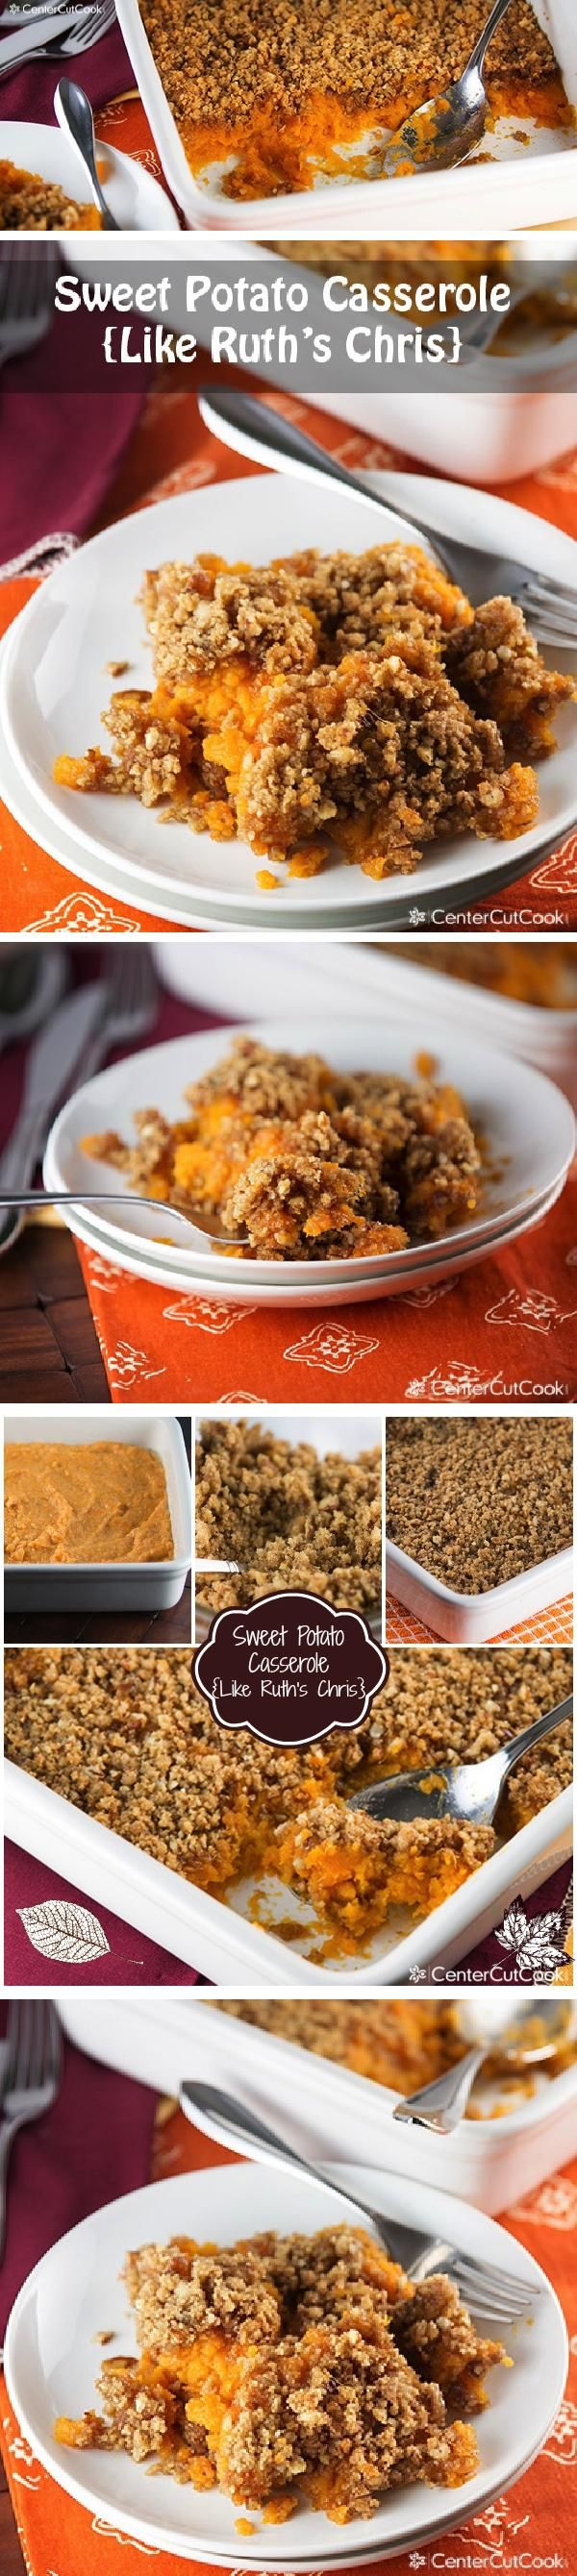 Thanksgiving dinner sweet potato recipes